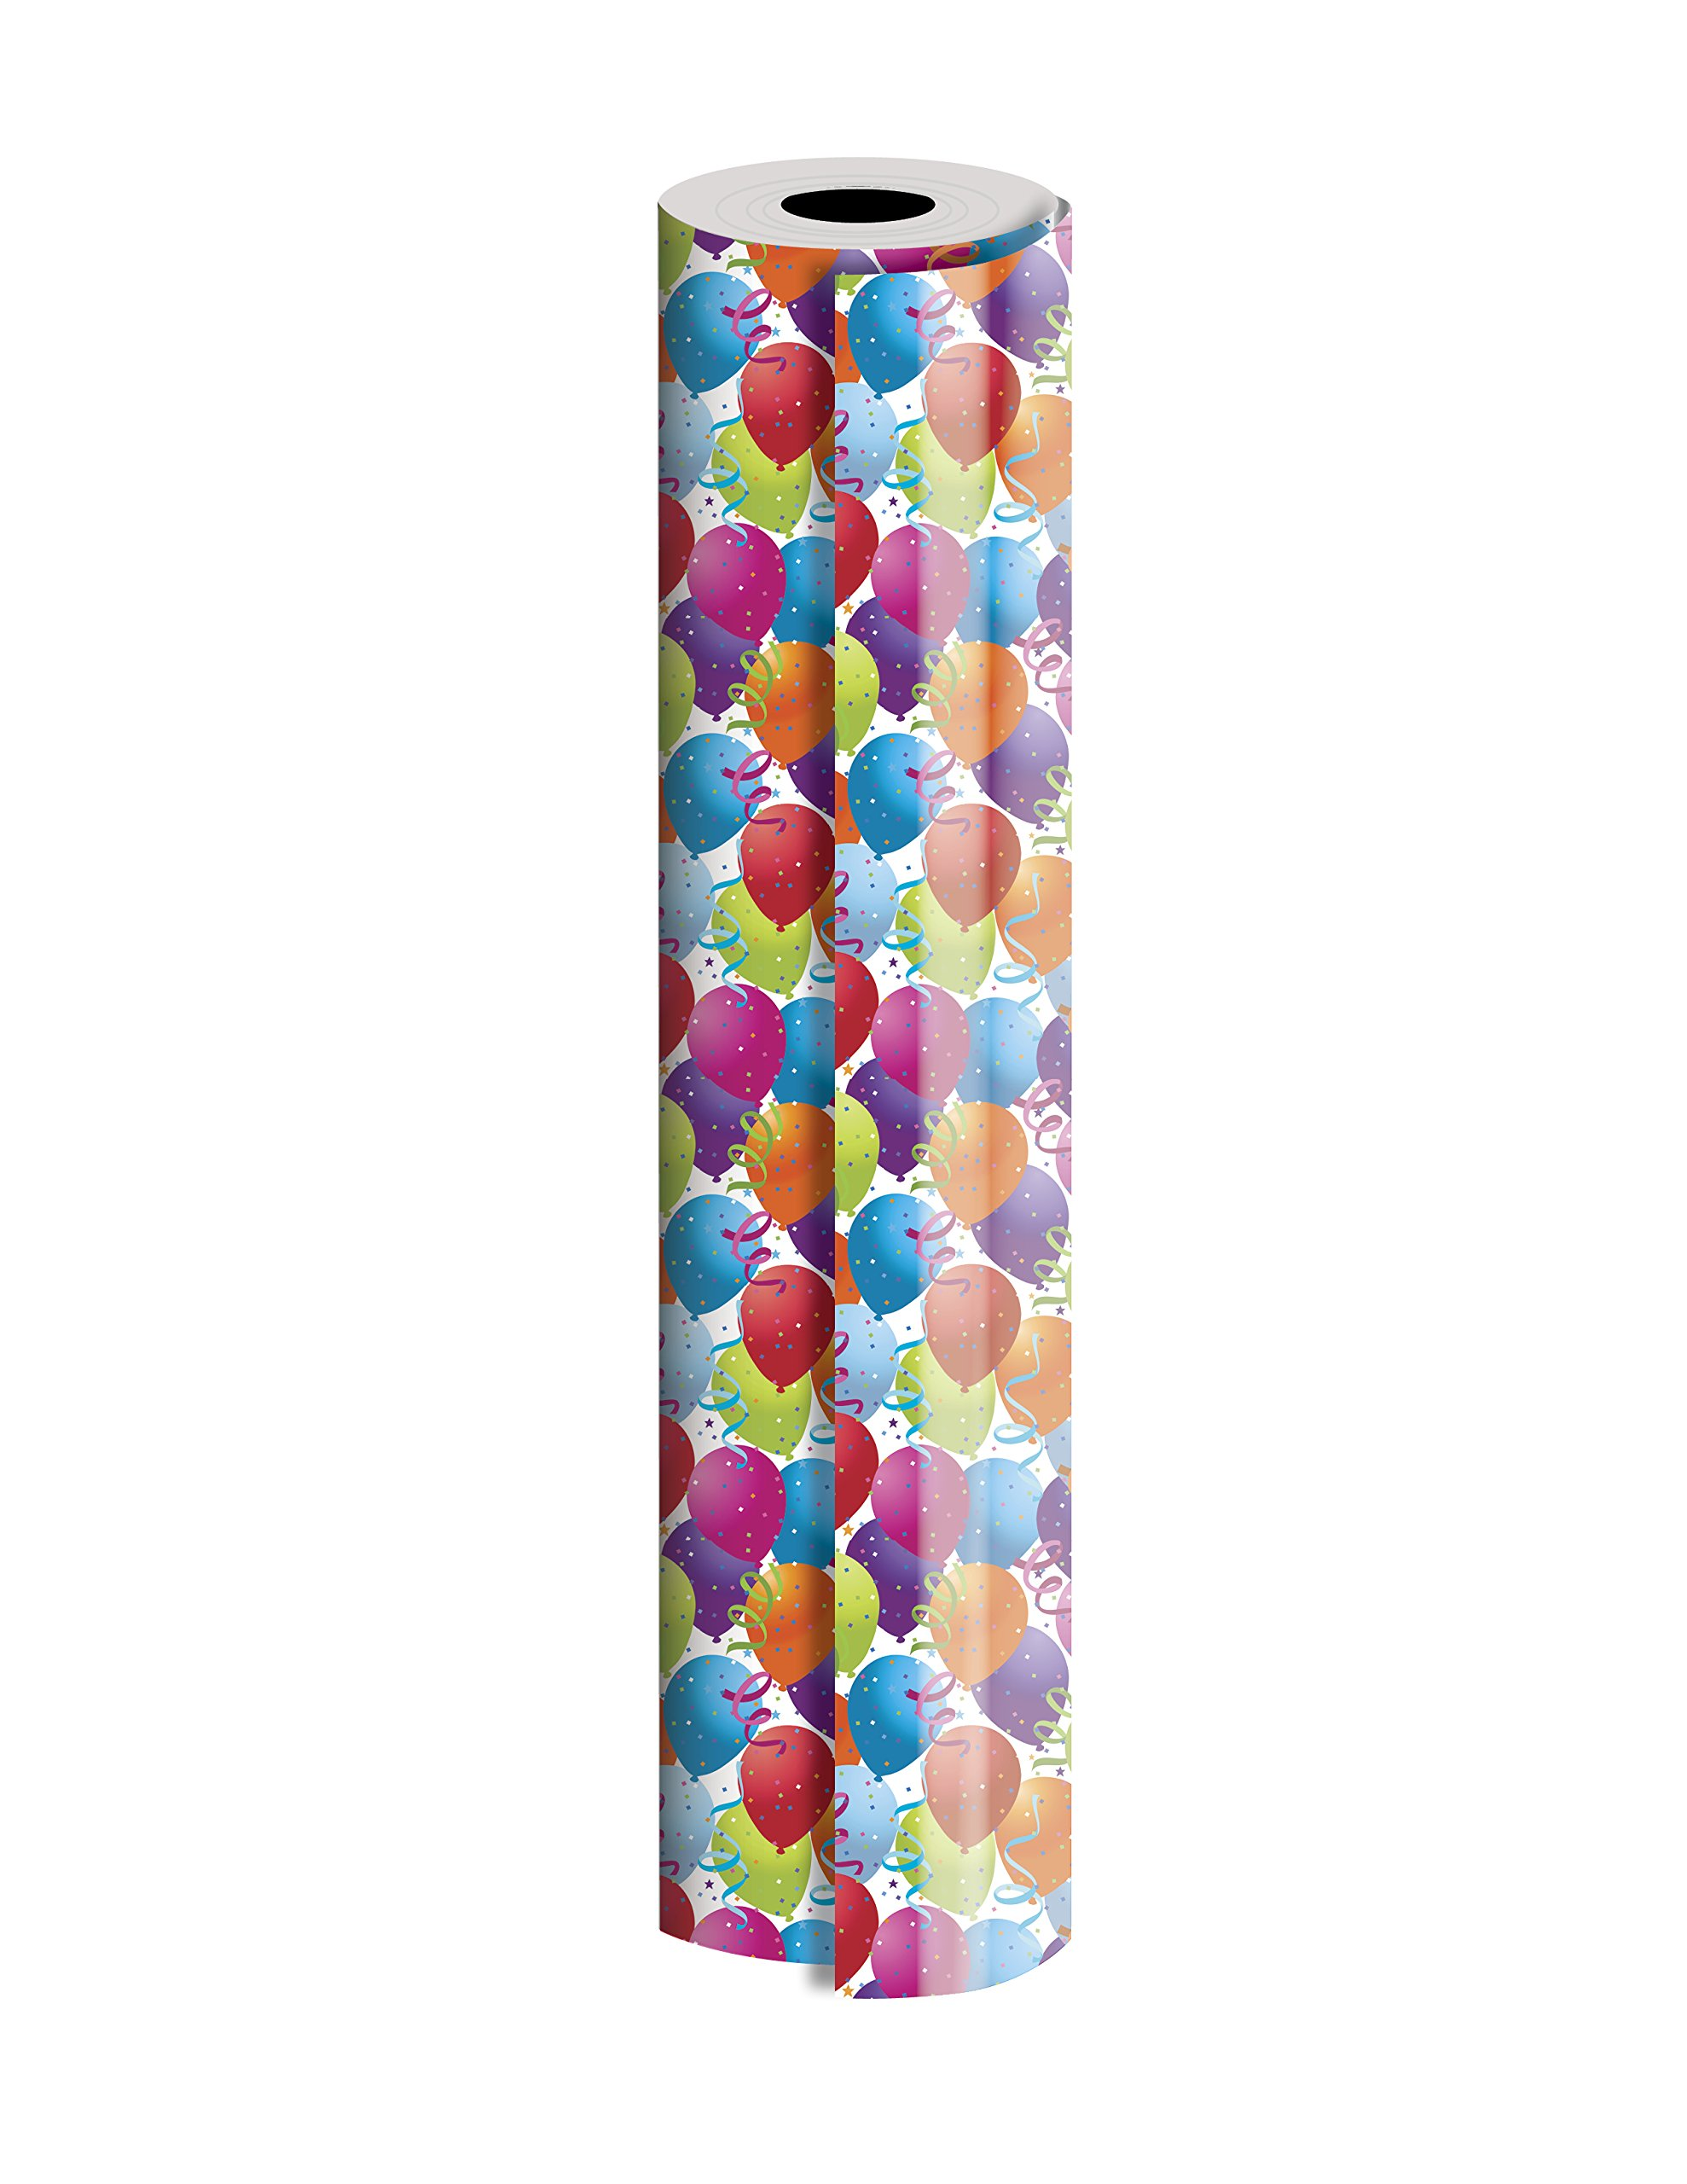 Jillson Roberts Bulk 1/4 Ream Gift Wrap Available in 14 Different Designs, 24'' x 208', Balloons